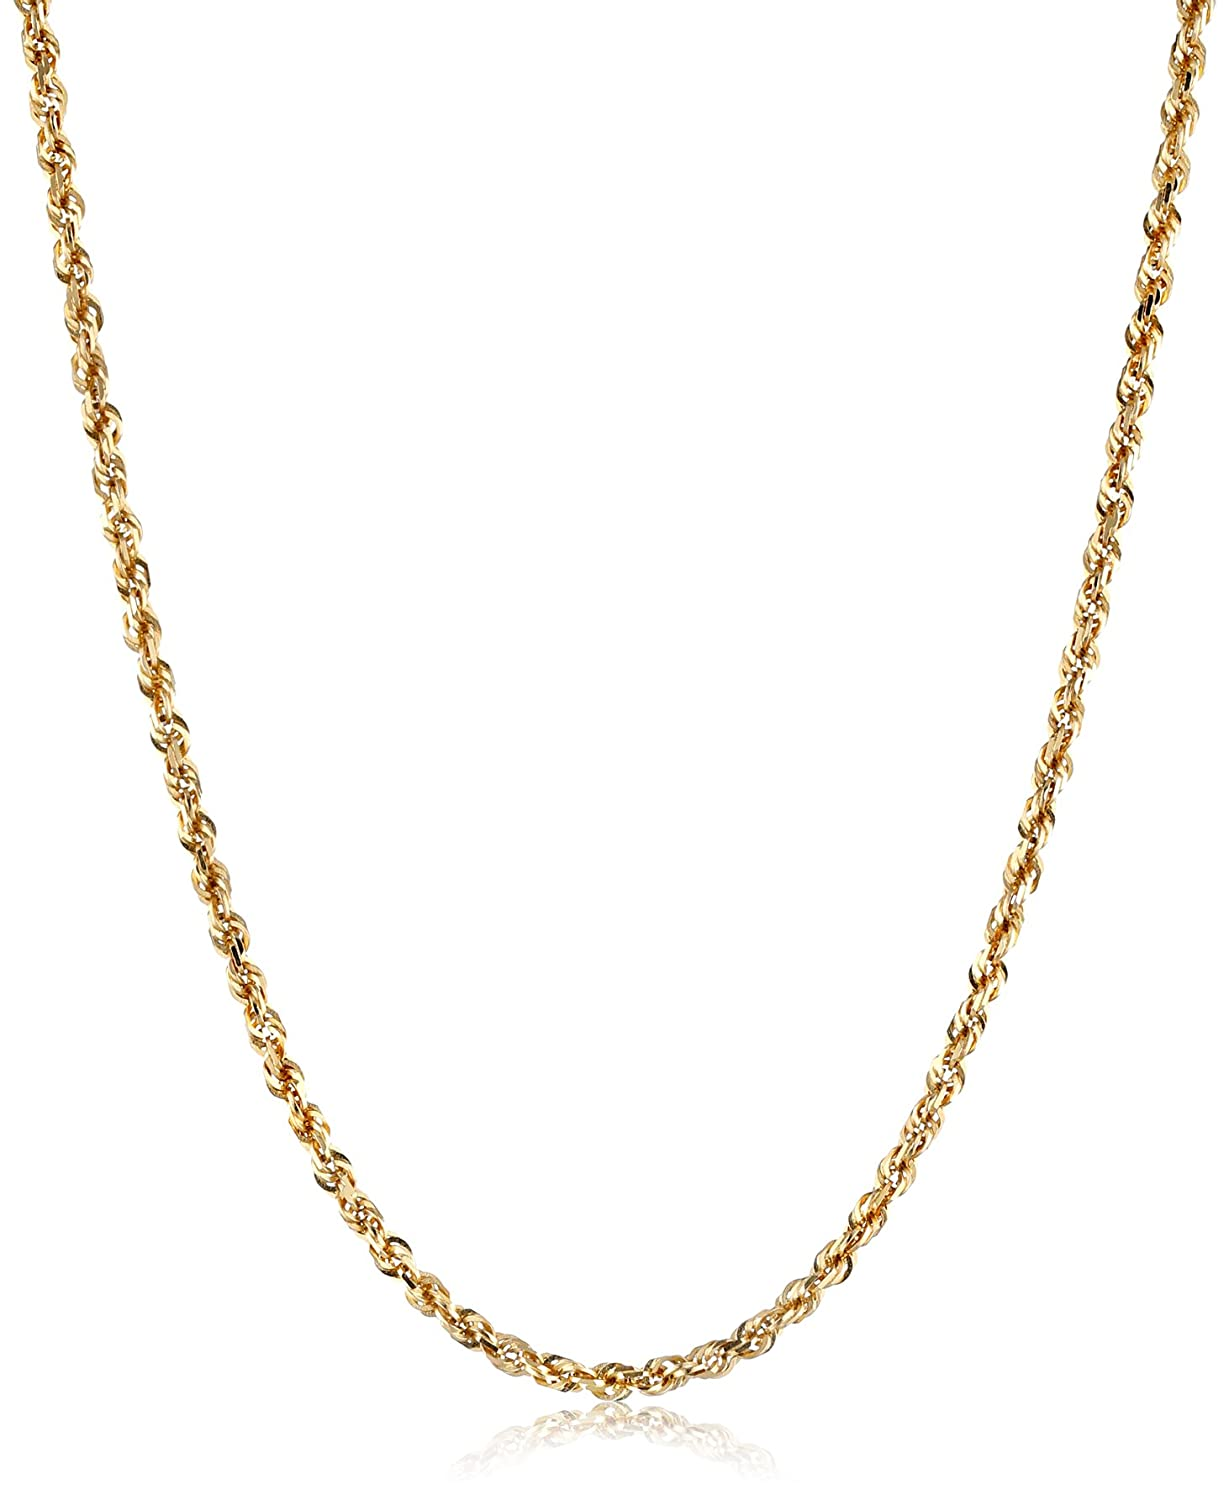 chain men universal jewels rope necklace cut gold products mm inch chains yellow women diamond